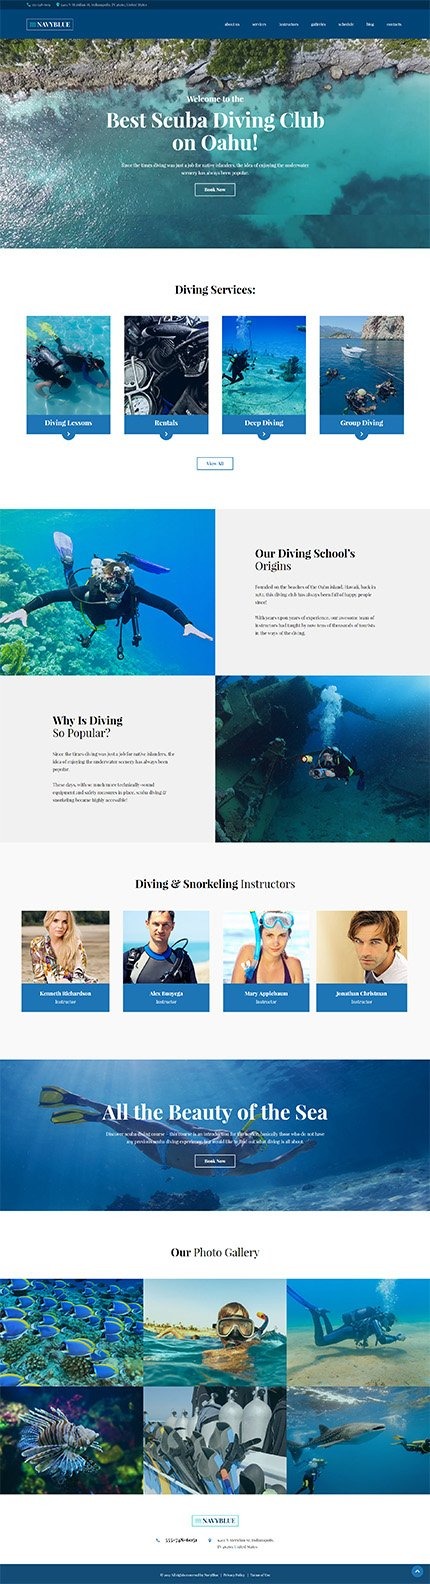 Custom Website Design Template #62484 -  diving club member water sea ocean